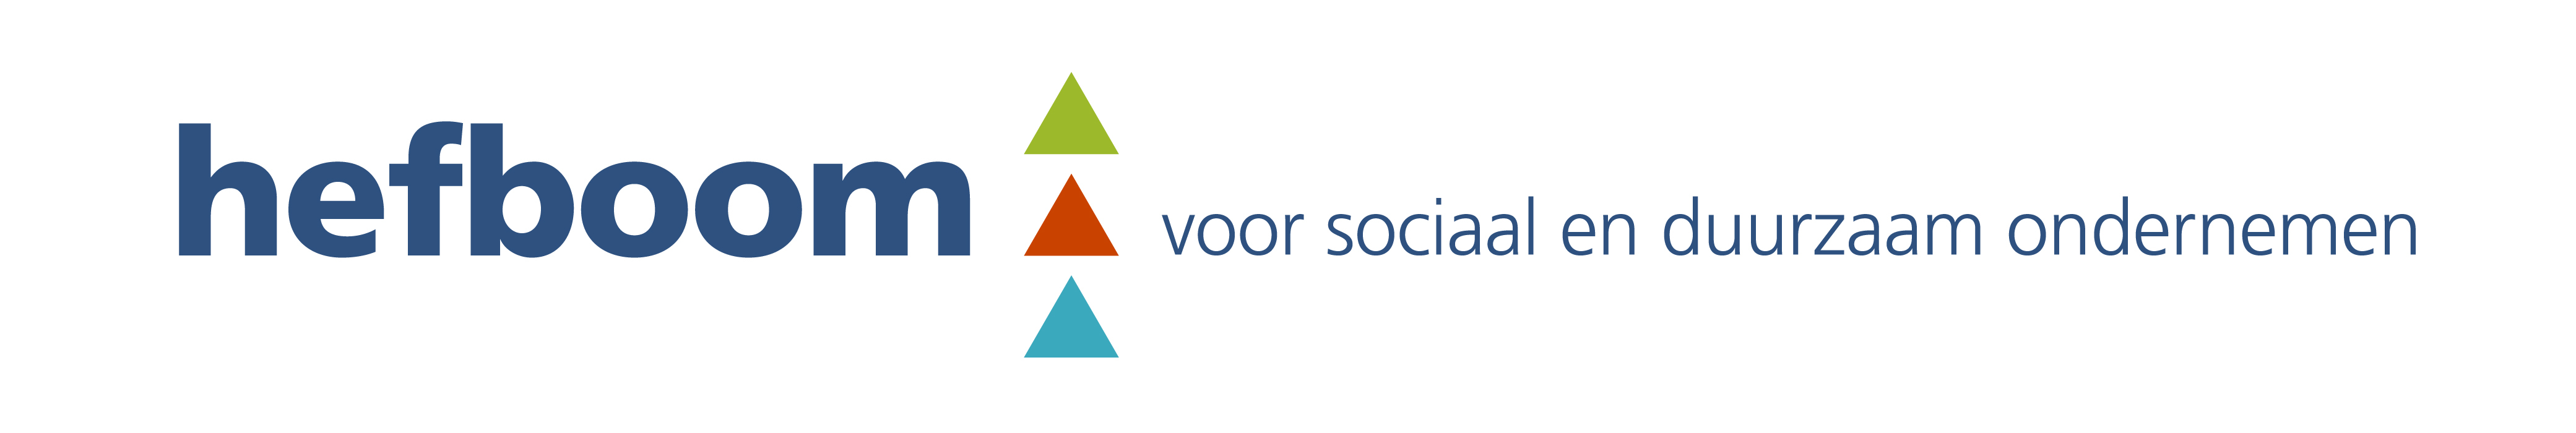 hefboom logo-01